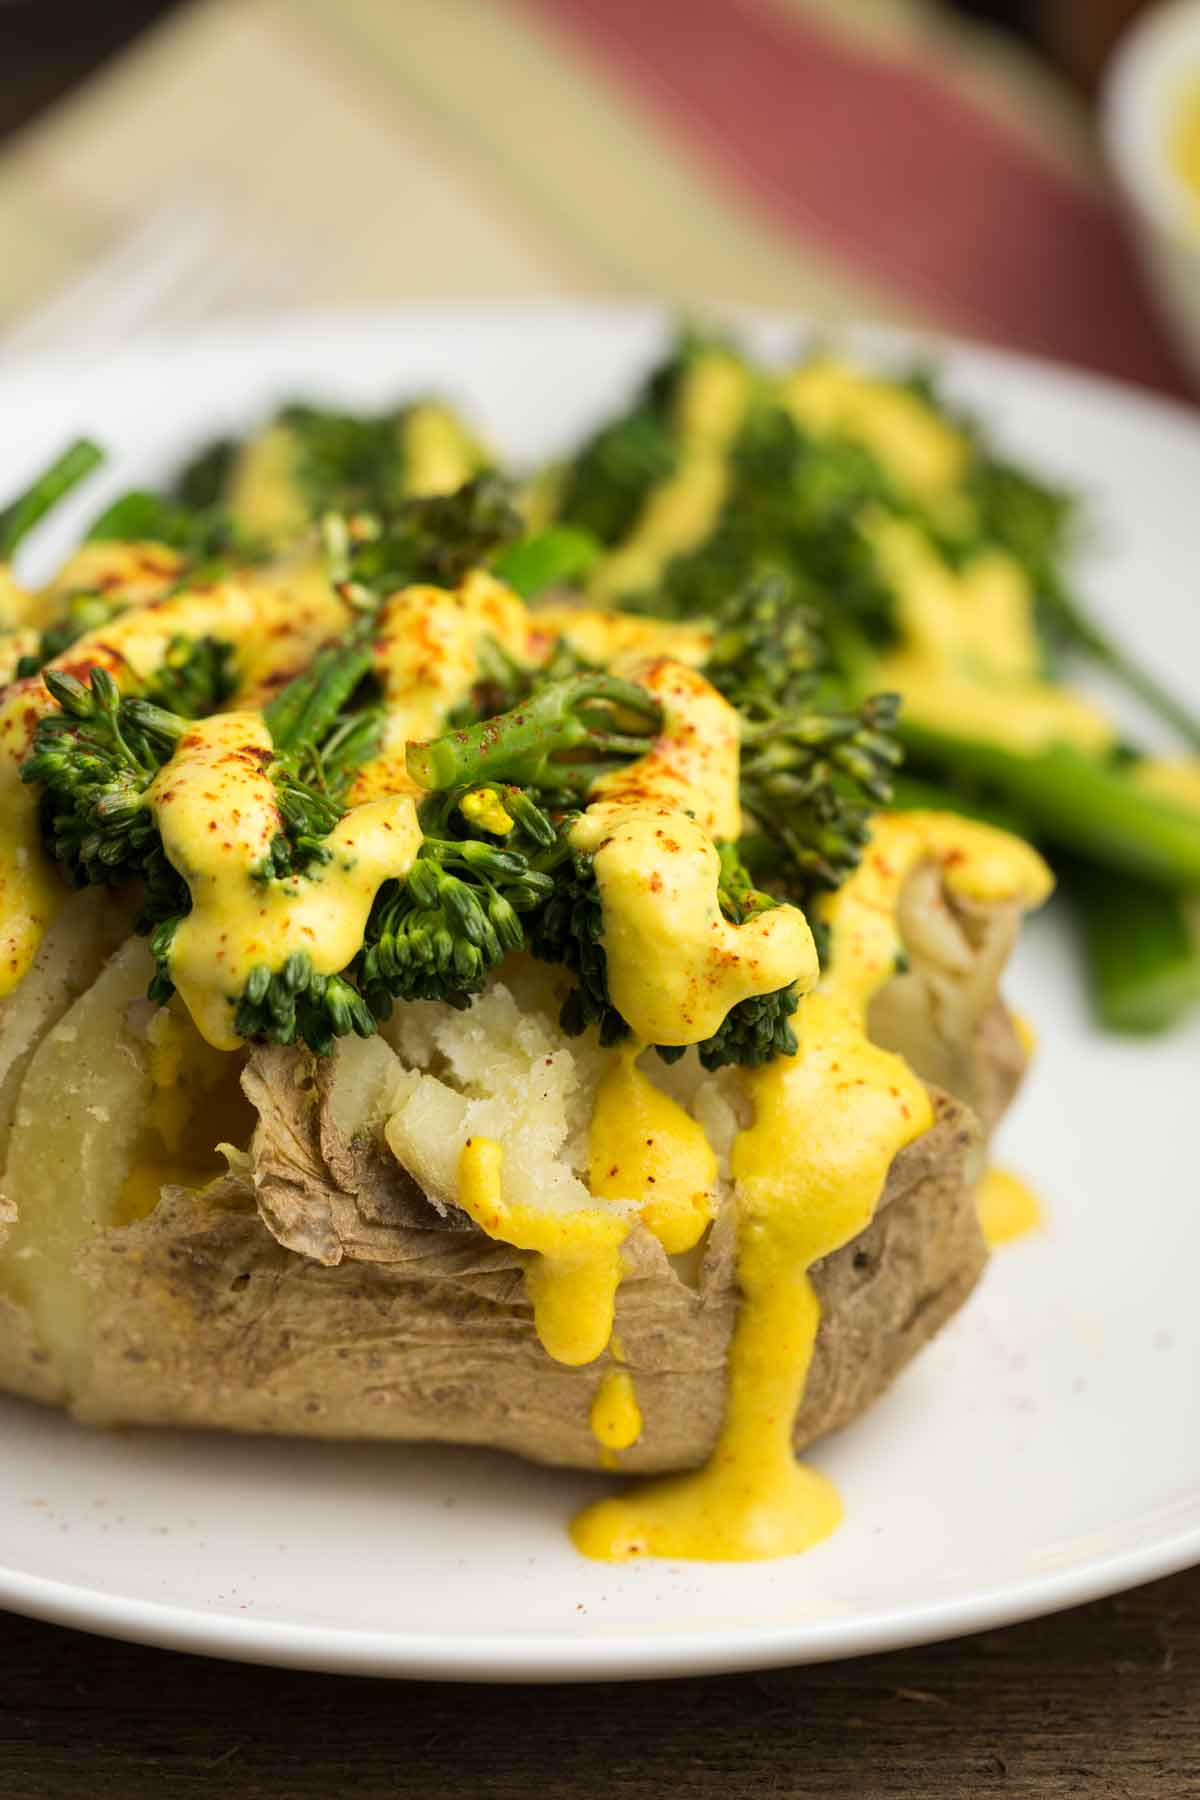 Spicy Baked Potato with Vegan Queso | via veggiechick.com #vegan #glutenfree